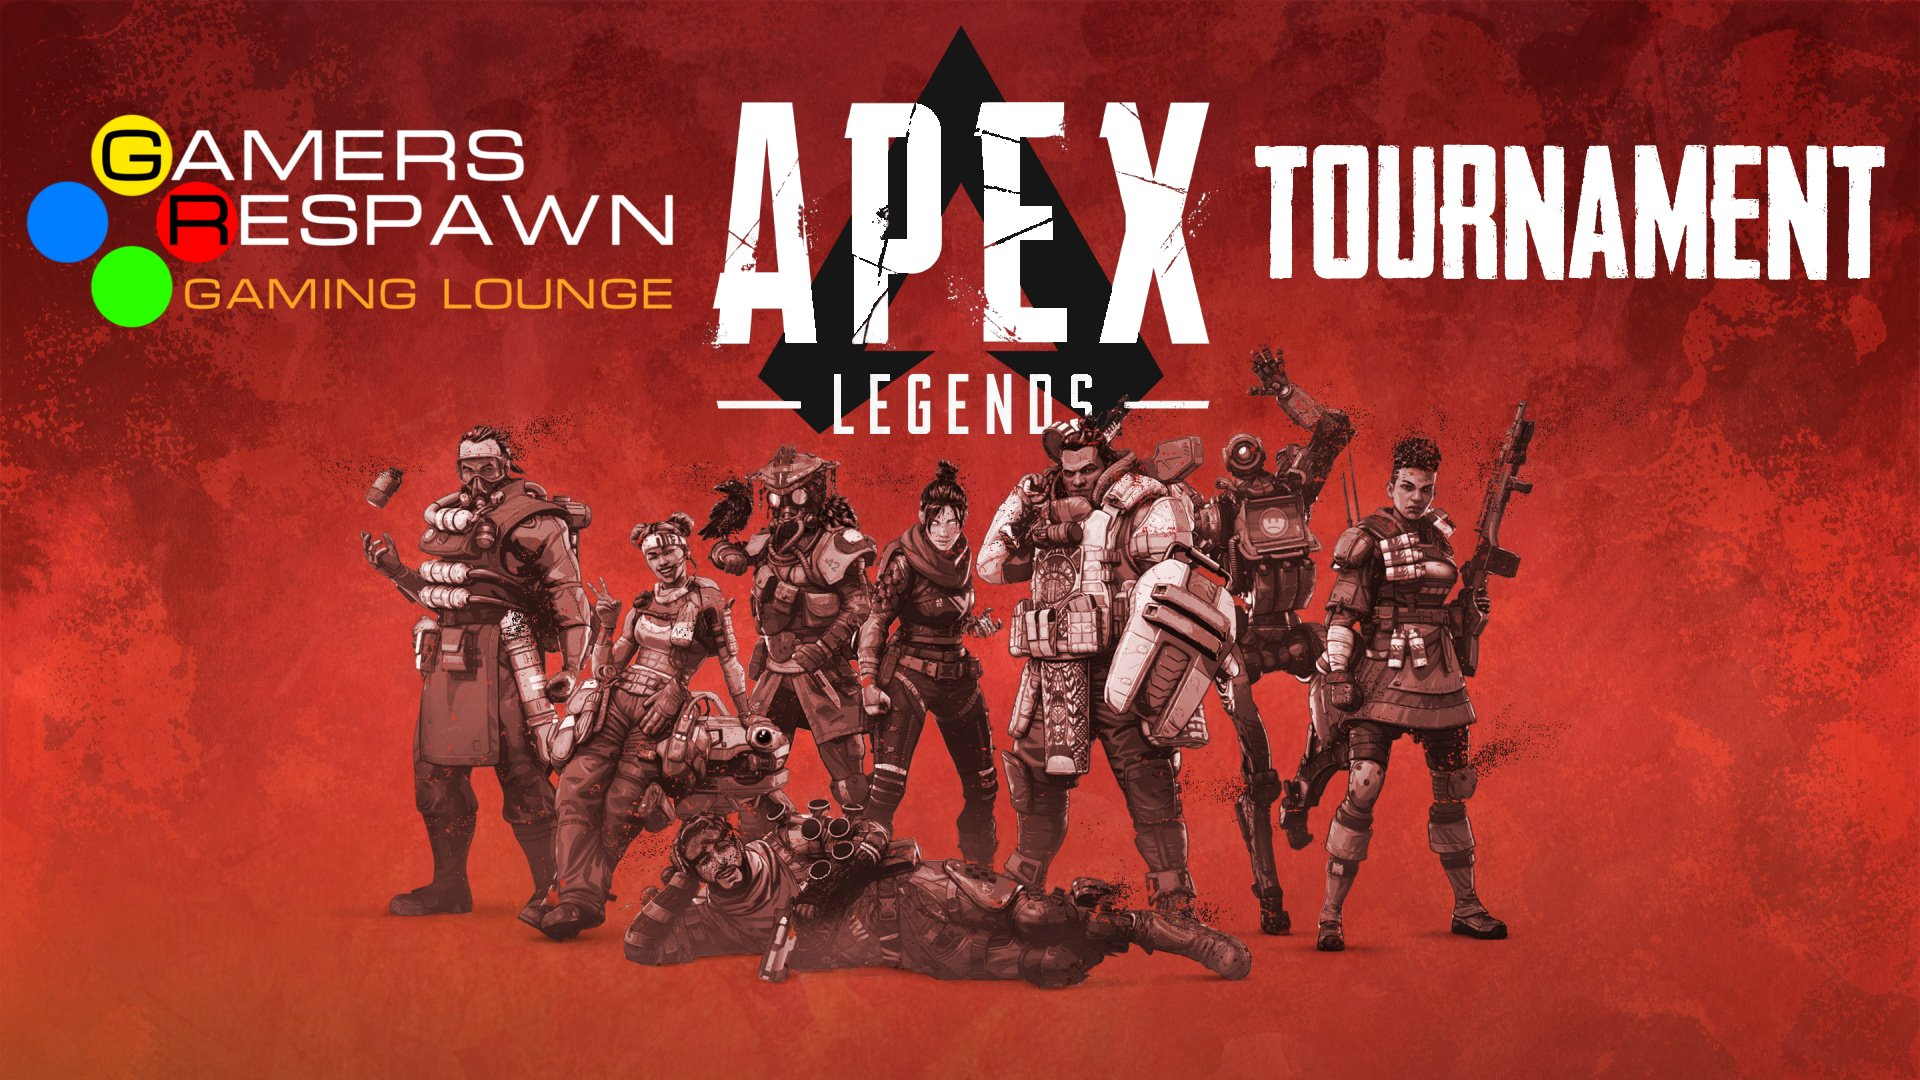 Apex Legends Tournament by Gamers Respawn